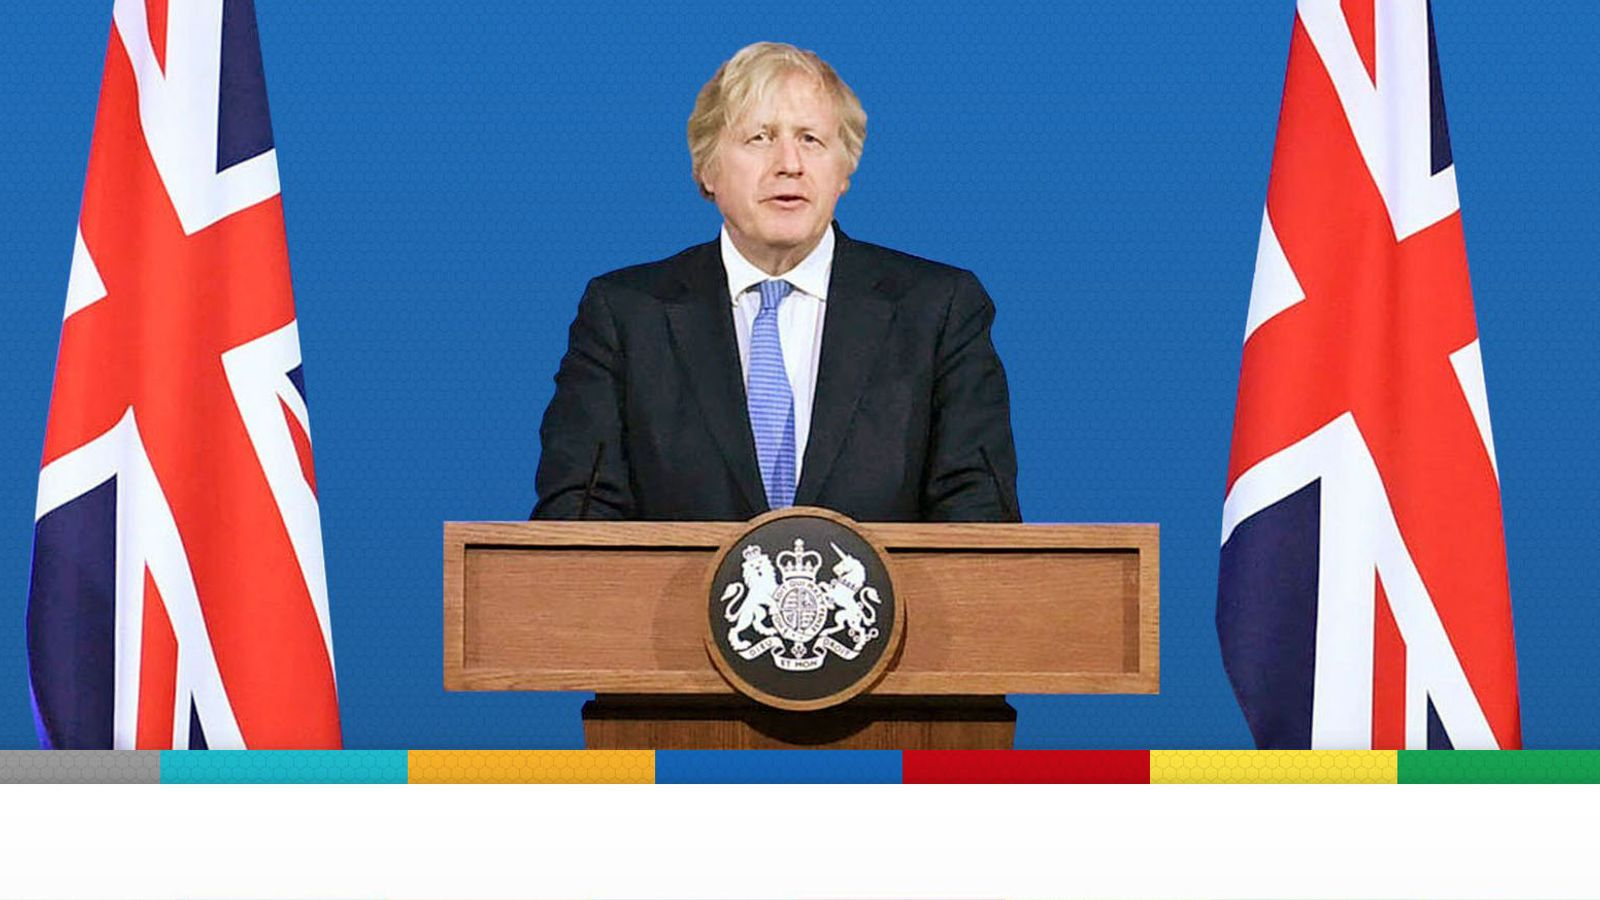 Election results: Boris Johnson invites devolved leaders to Union summit - as he hails 'Team UK'